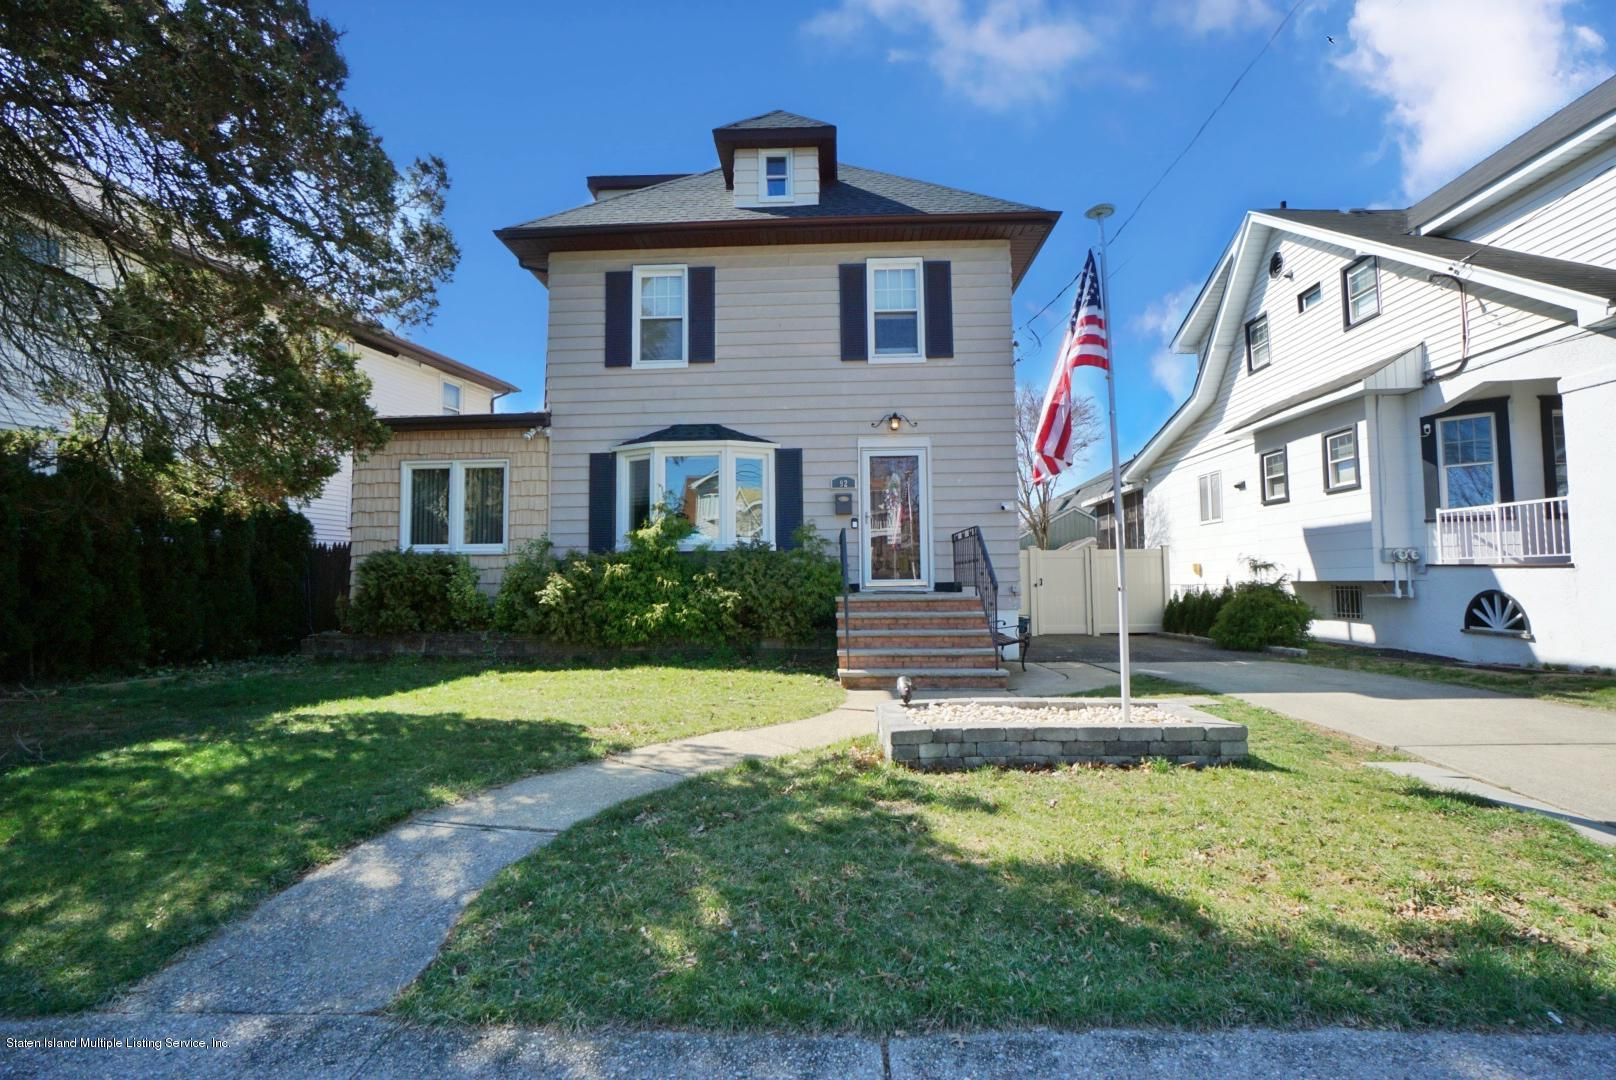 Single Family - Detached 92 Steele Avenue  Staten Island, NY 10306, MLS-1136567-2